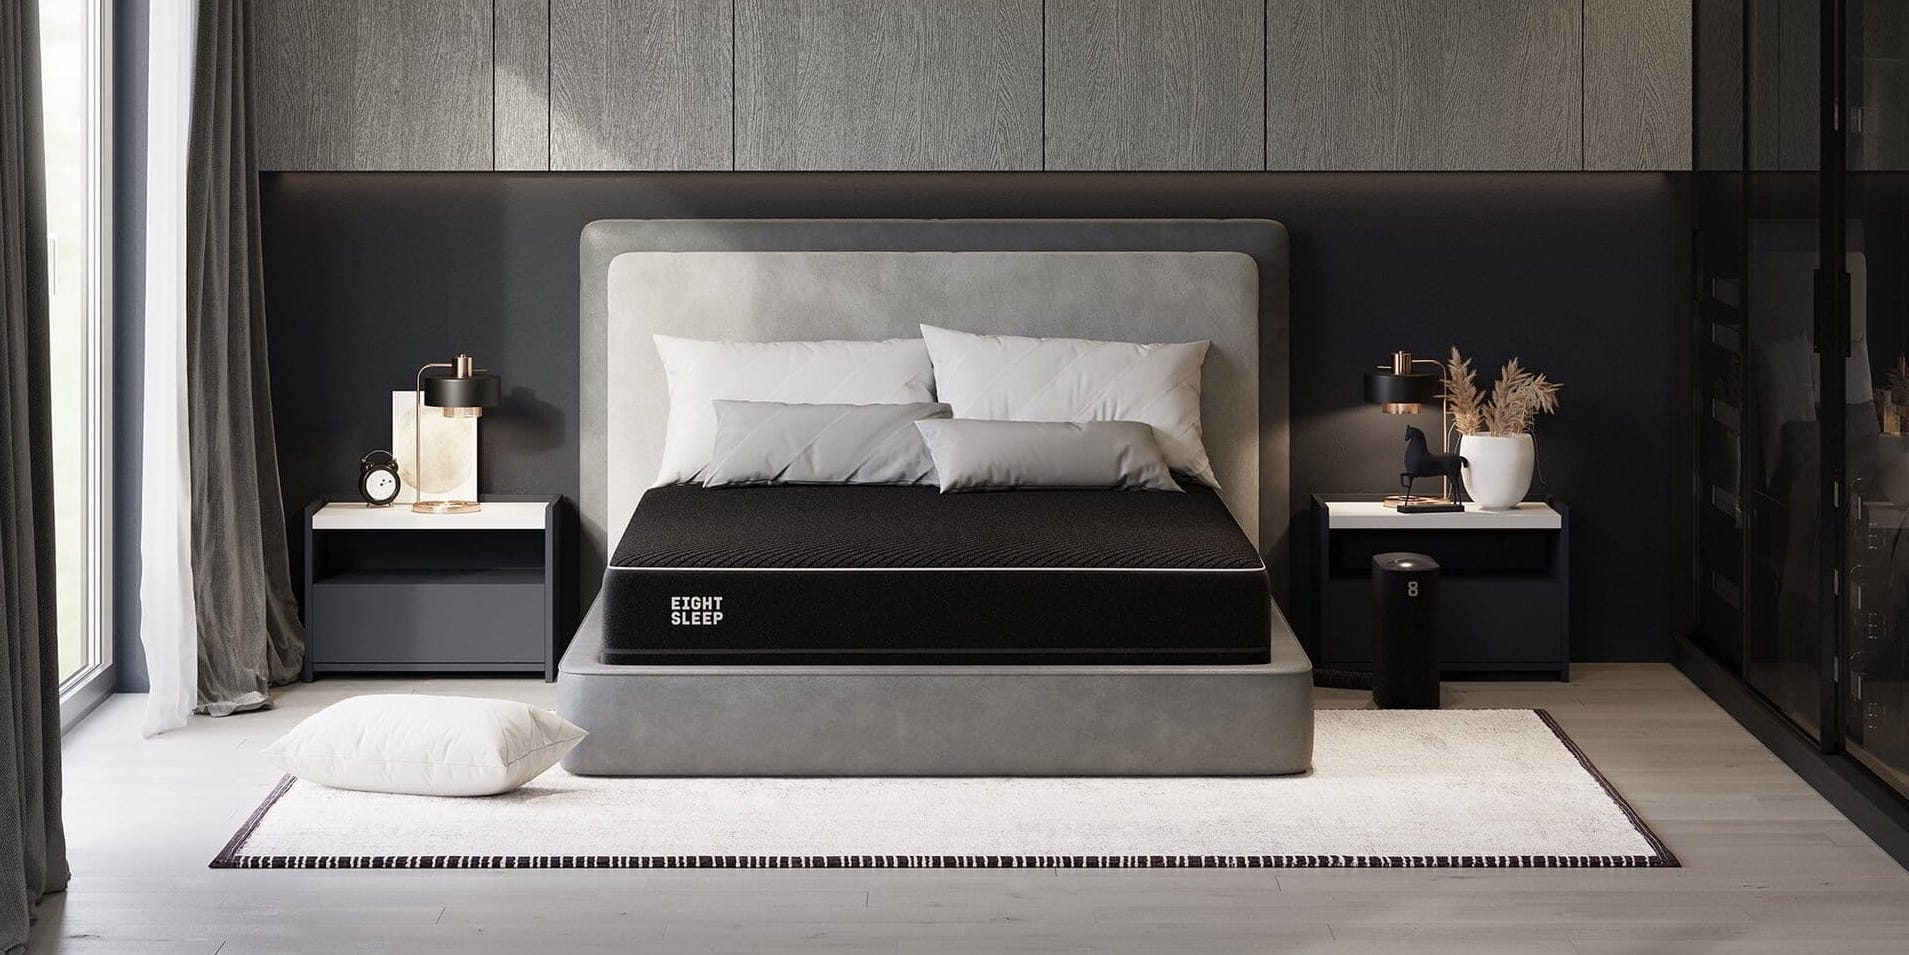 Eight Sleep Pod Pro in modern bedroom - crop